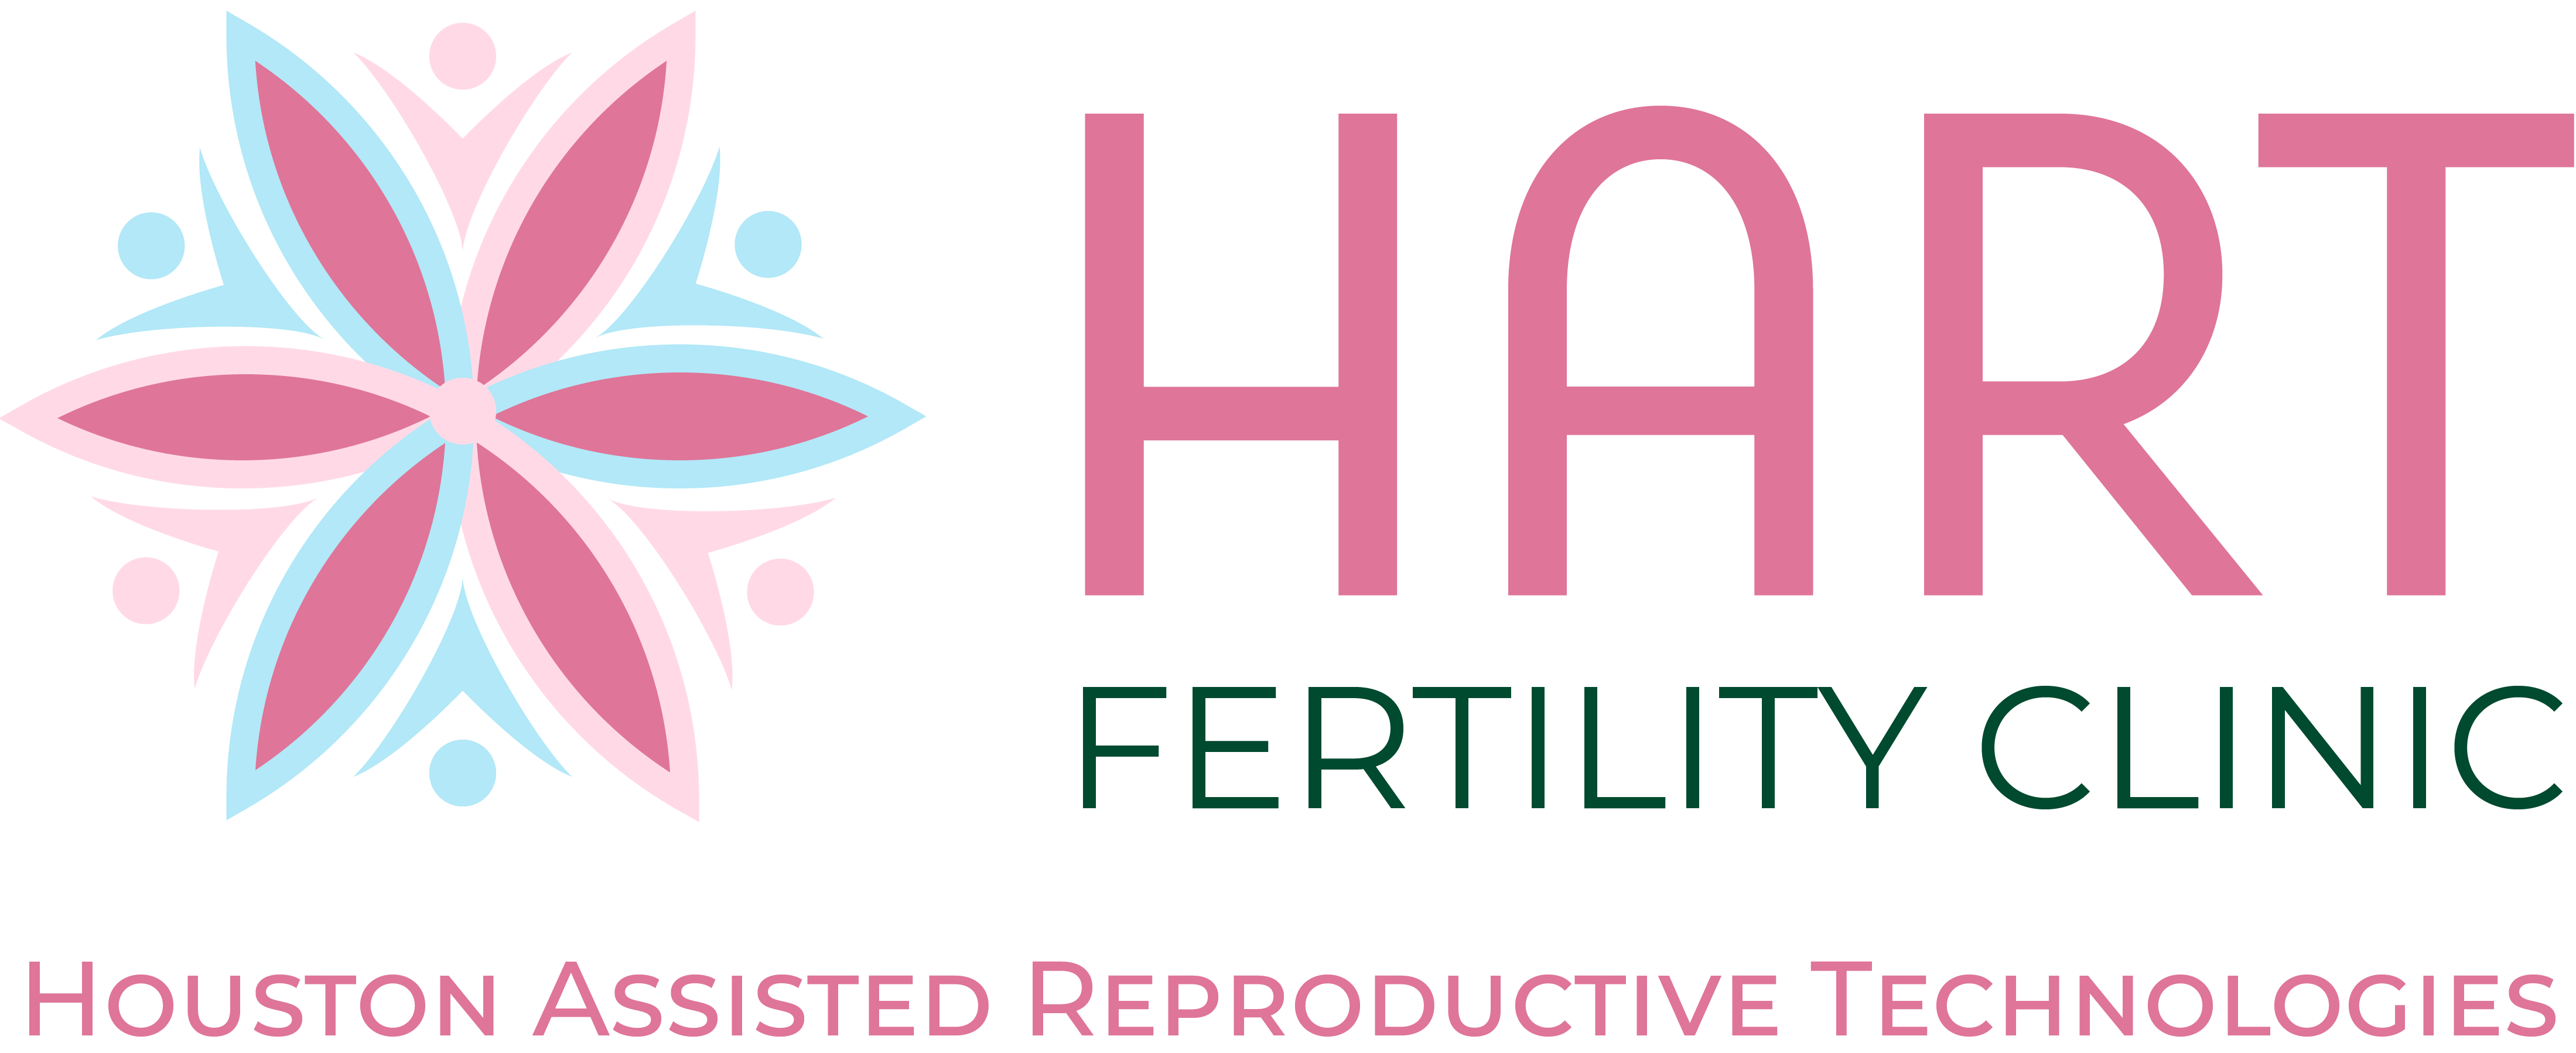 Houston Assisted Reproductive Technologies